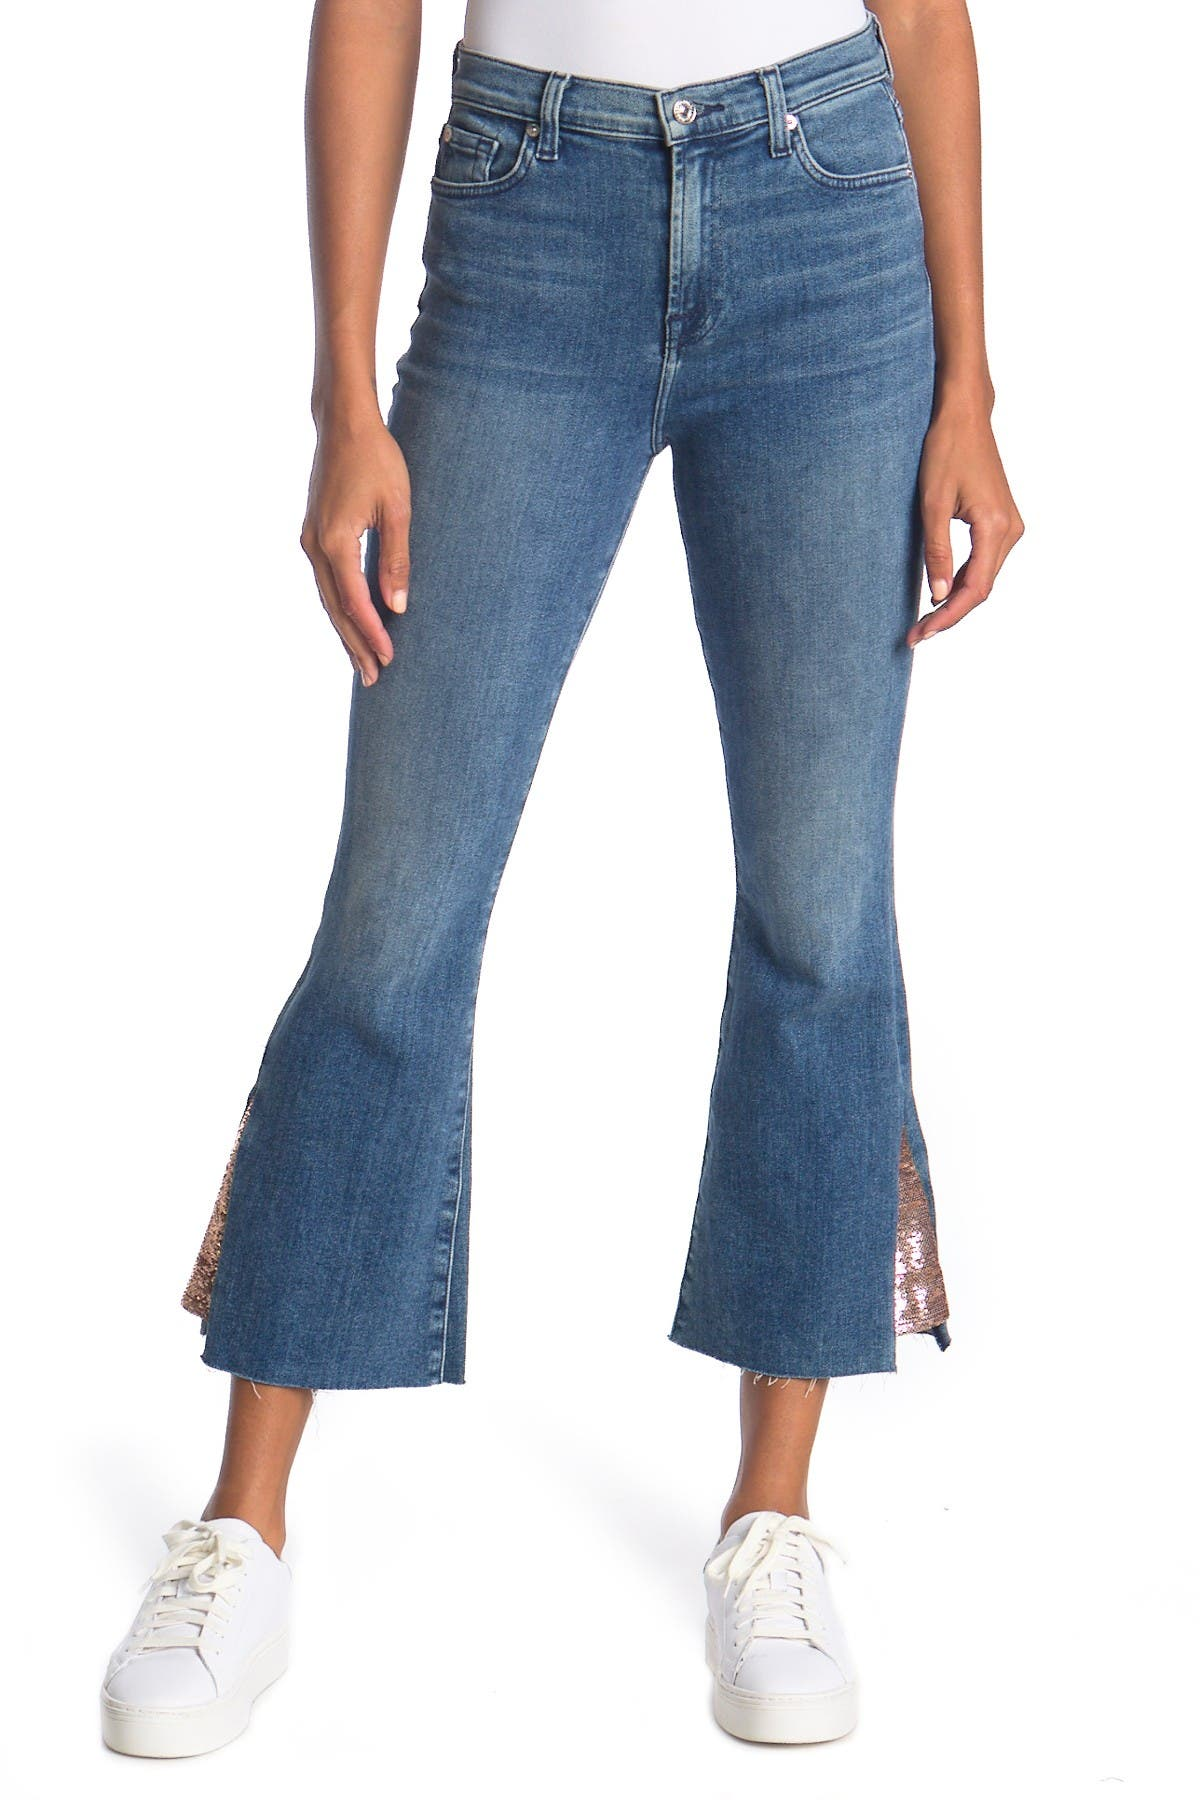 Image of 7 For All Mankind High Waist Sequin Hem Kick Flare Cropped Jeans